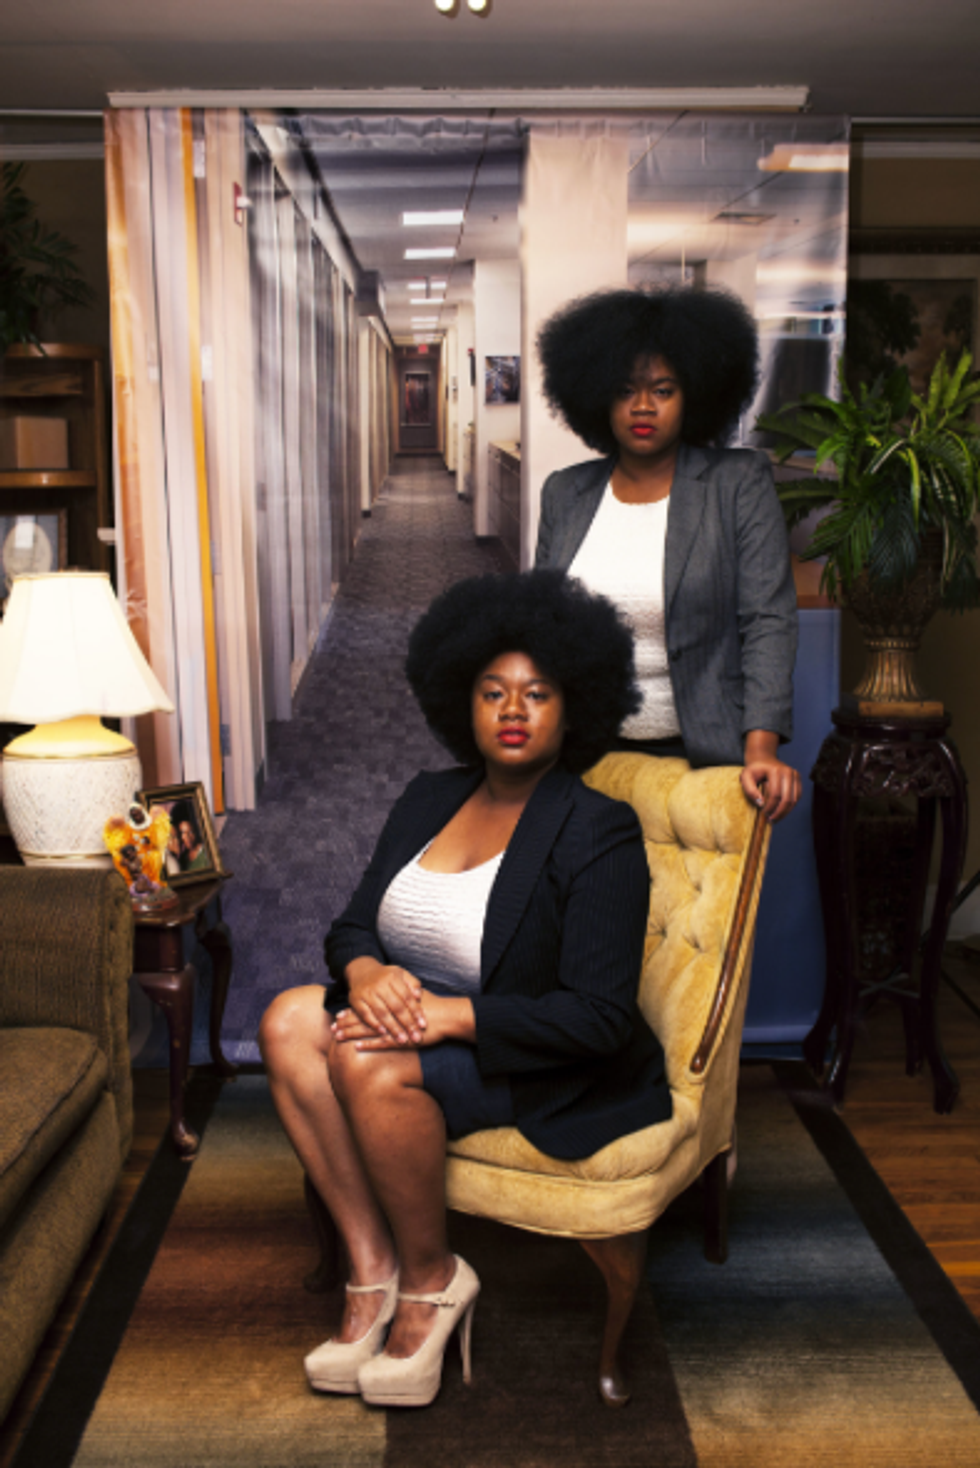 To Be Black, Female & Corporate: Photographer Endia Beal Addresses Race and Gender In Workplaces